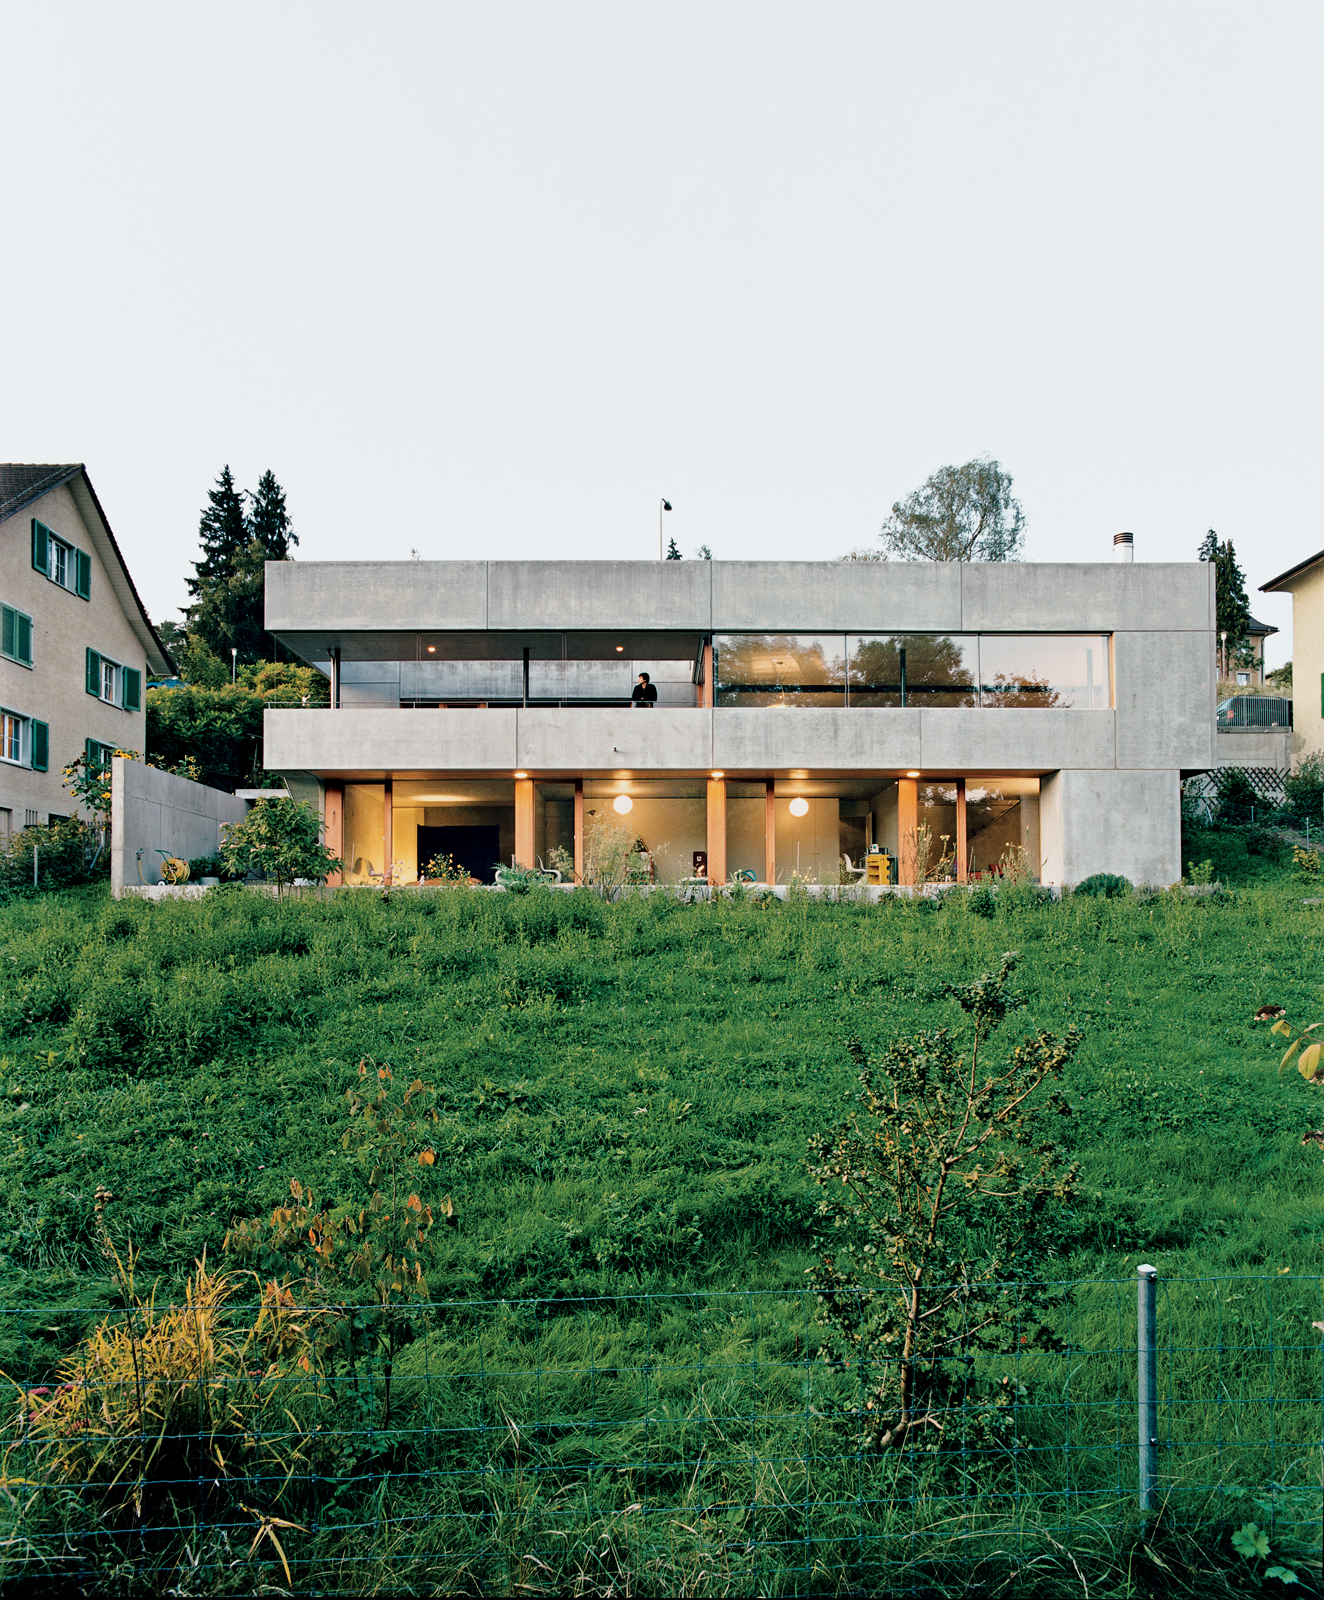 The rear of the house looks onto a lush backyard. The rough, industrial prefabricated concrete panels by the German manufacturer Syspro are the building blocks of the home.